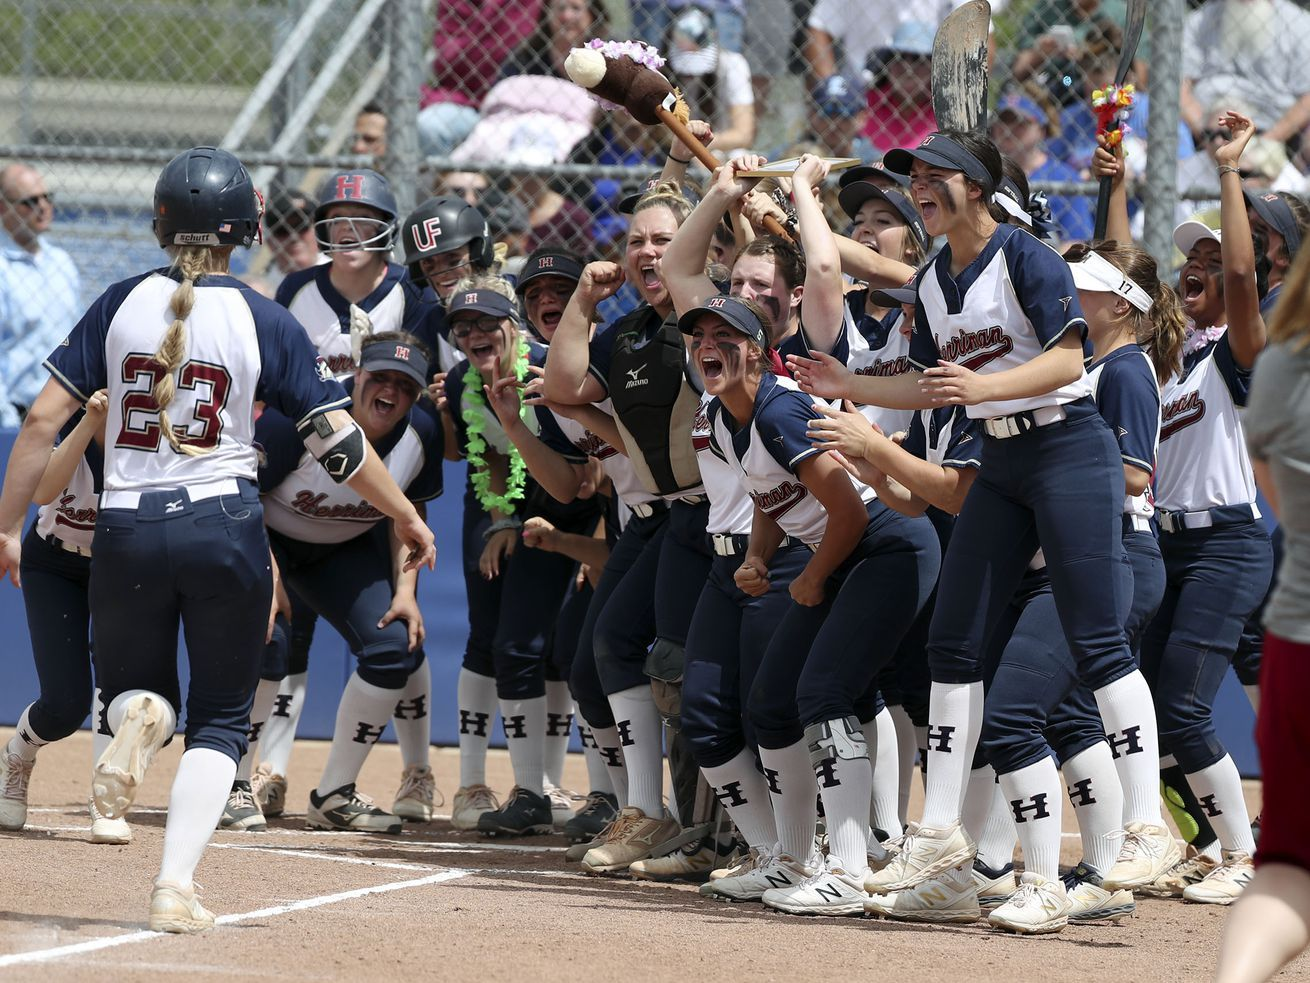 UHSAA extends suspension of spring sports through May 1